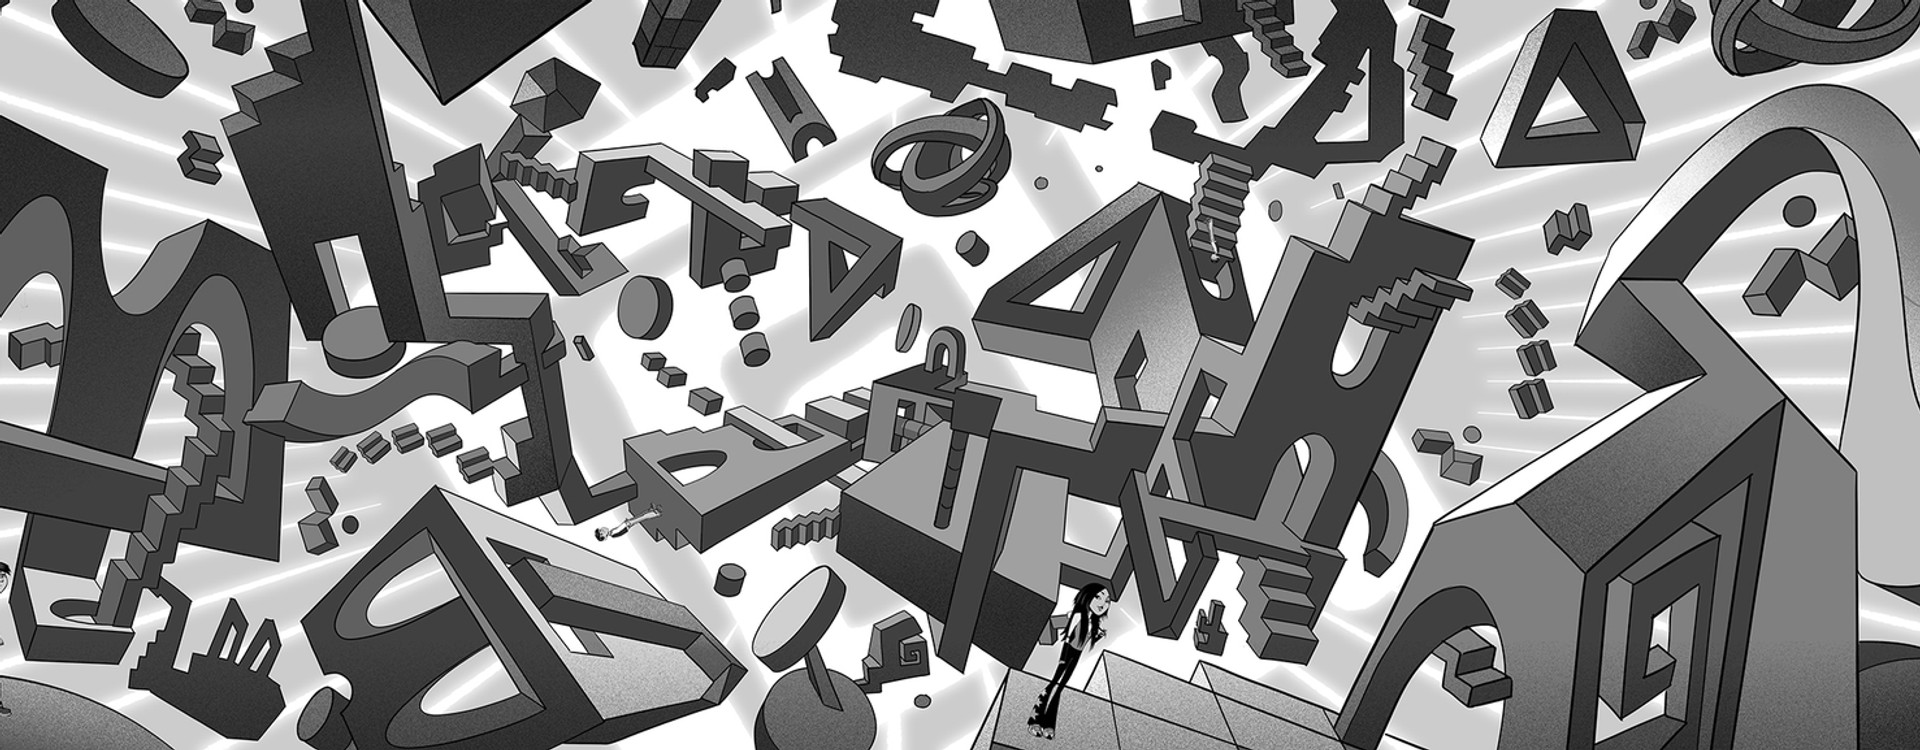 Escher Puzzle World